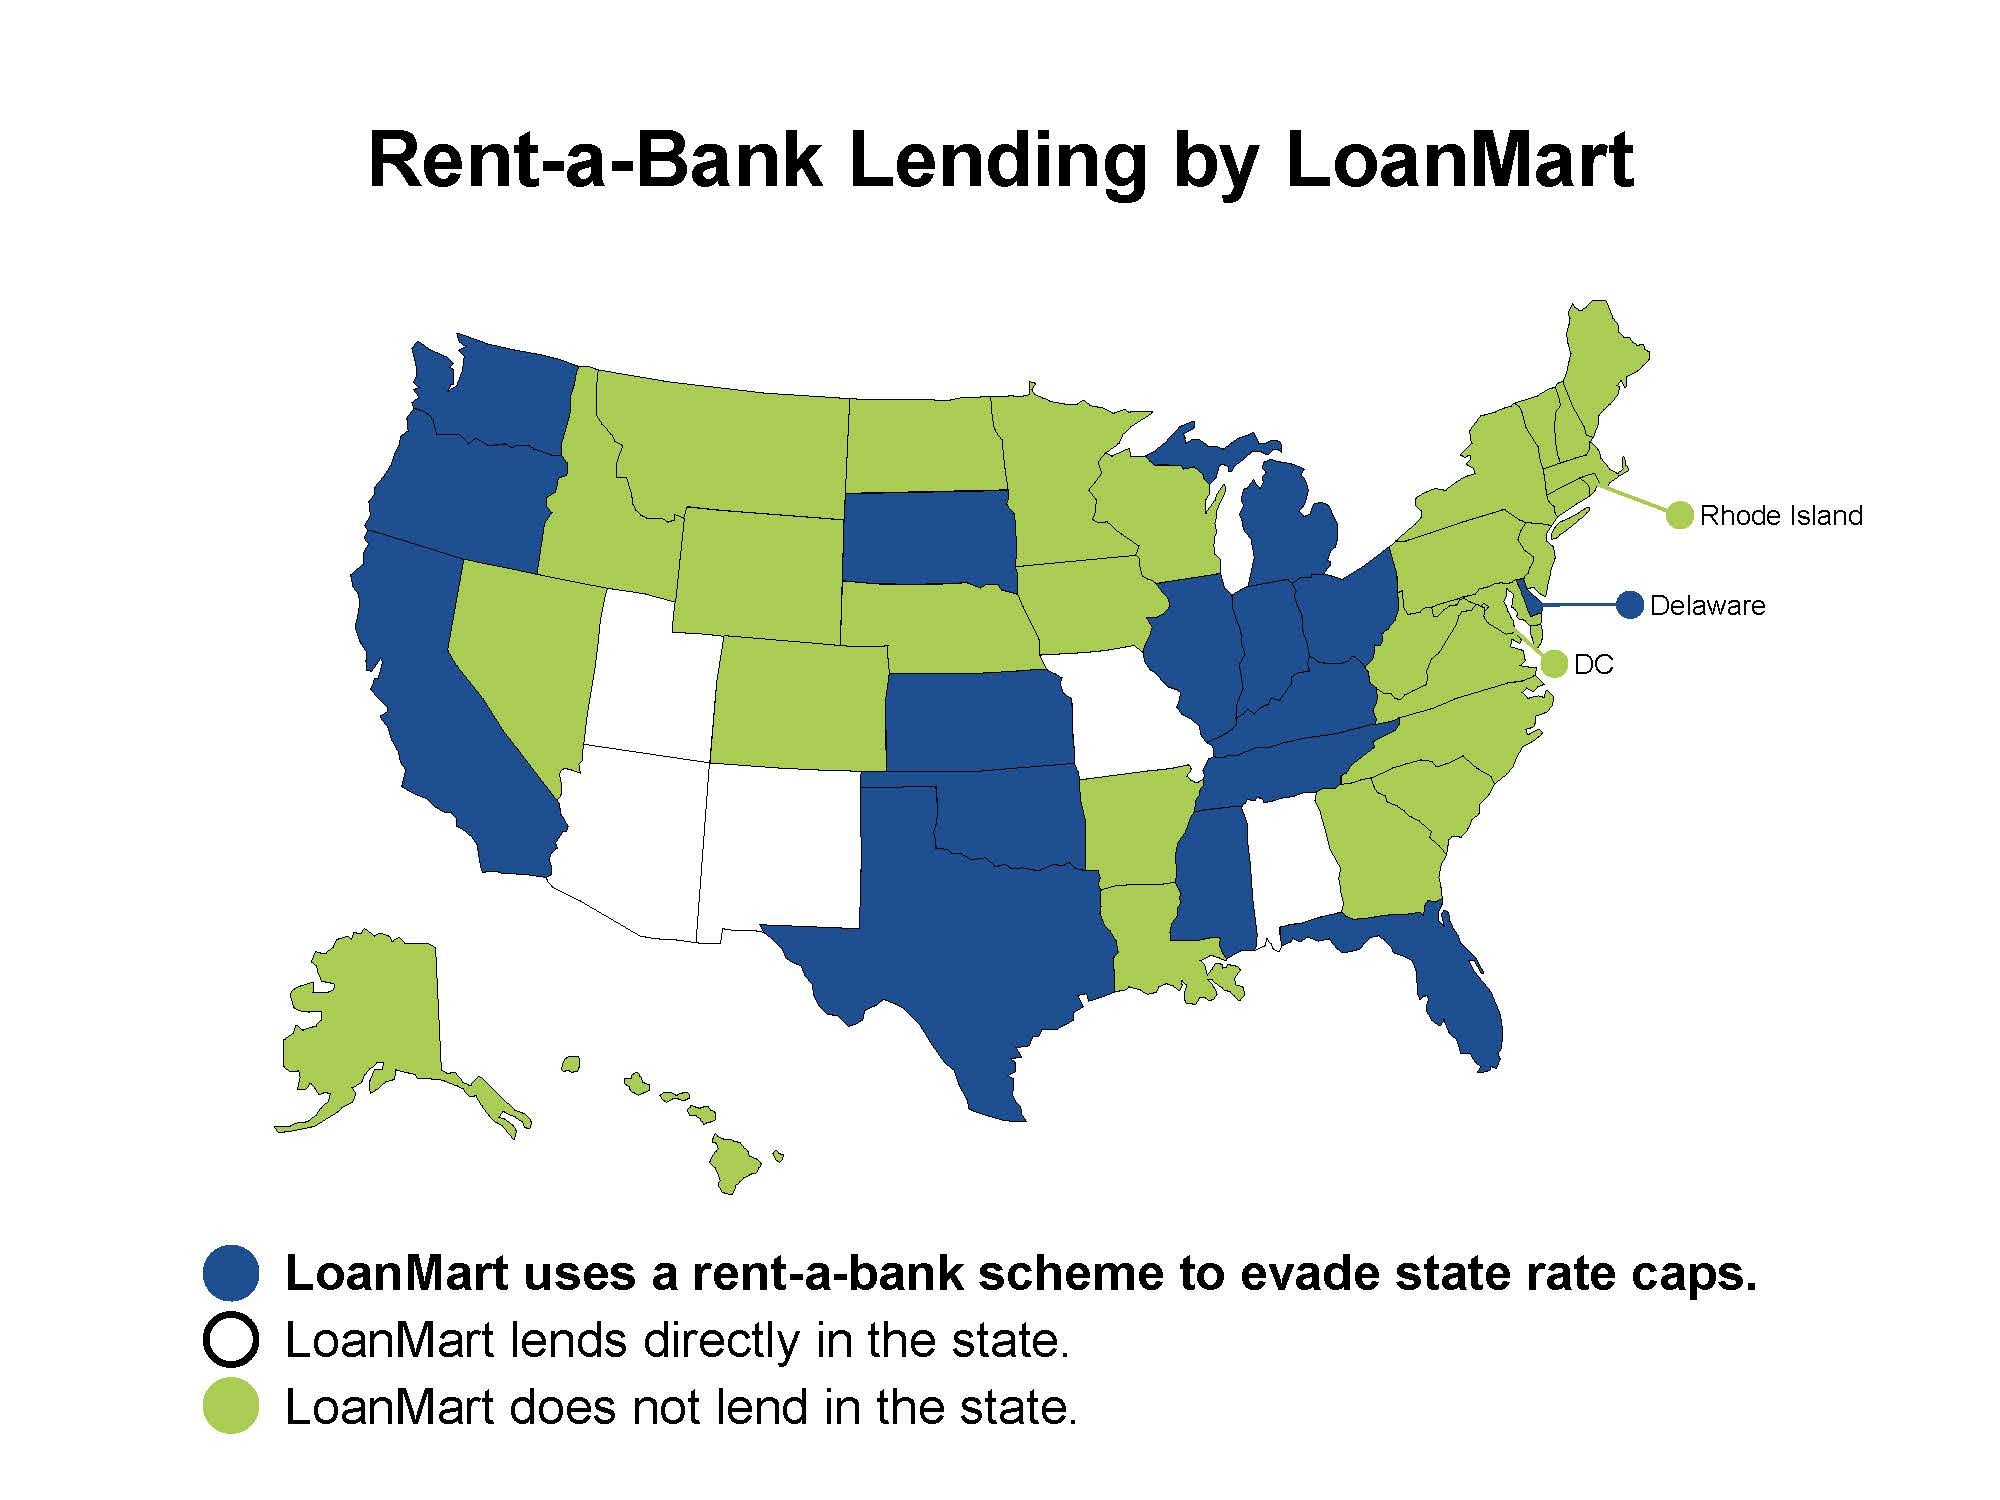 Map of the U.S. in which the states that LoanMart uses rent-a-bank schemes to avoid state rate caps are colored in blue. States in which LoanMart directly lends are white, while the states in which the organization does not lend are in green.